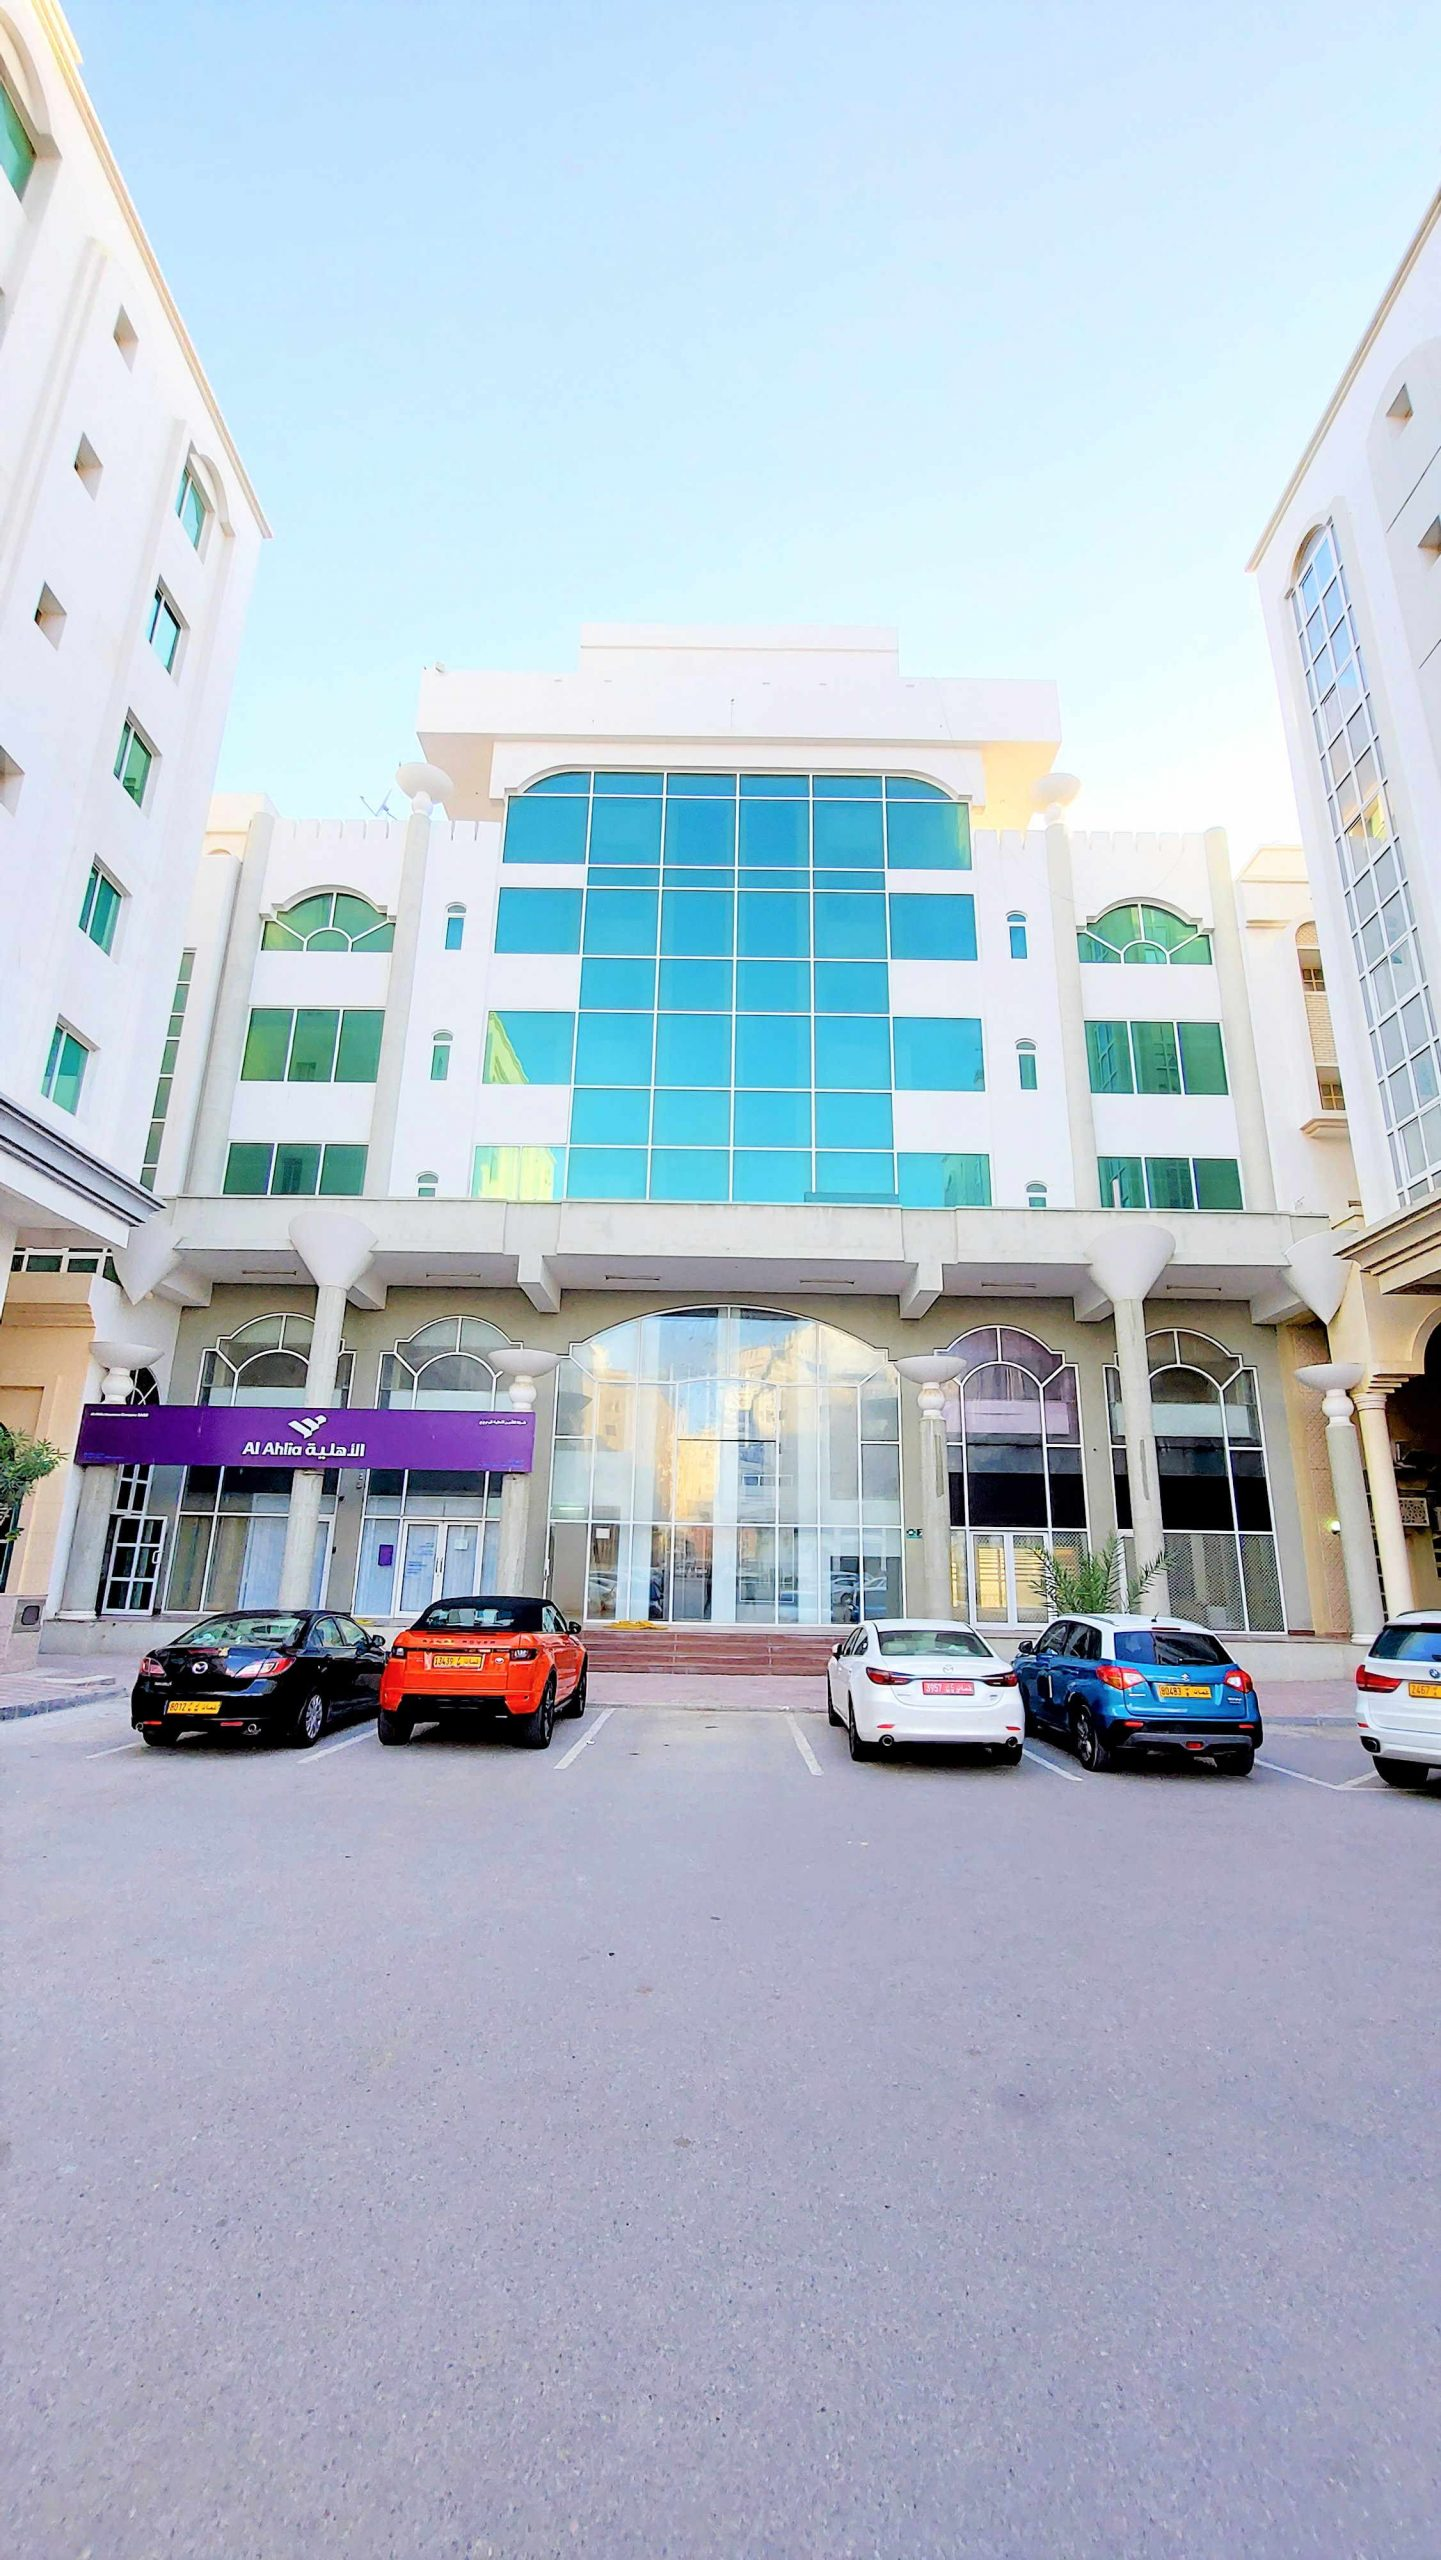 """You are currently viewing Bait Al Qurum <br><span class=""""headlin"""">MBD Area Ruwi, Muscat, Oman</span><br><span class=""""headlin2"""">Category: Office Space – For Rent</span>"""